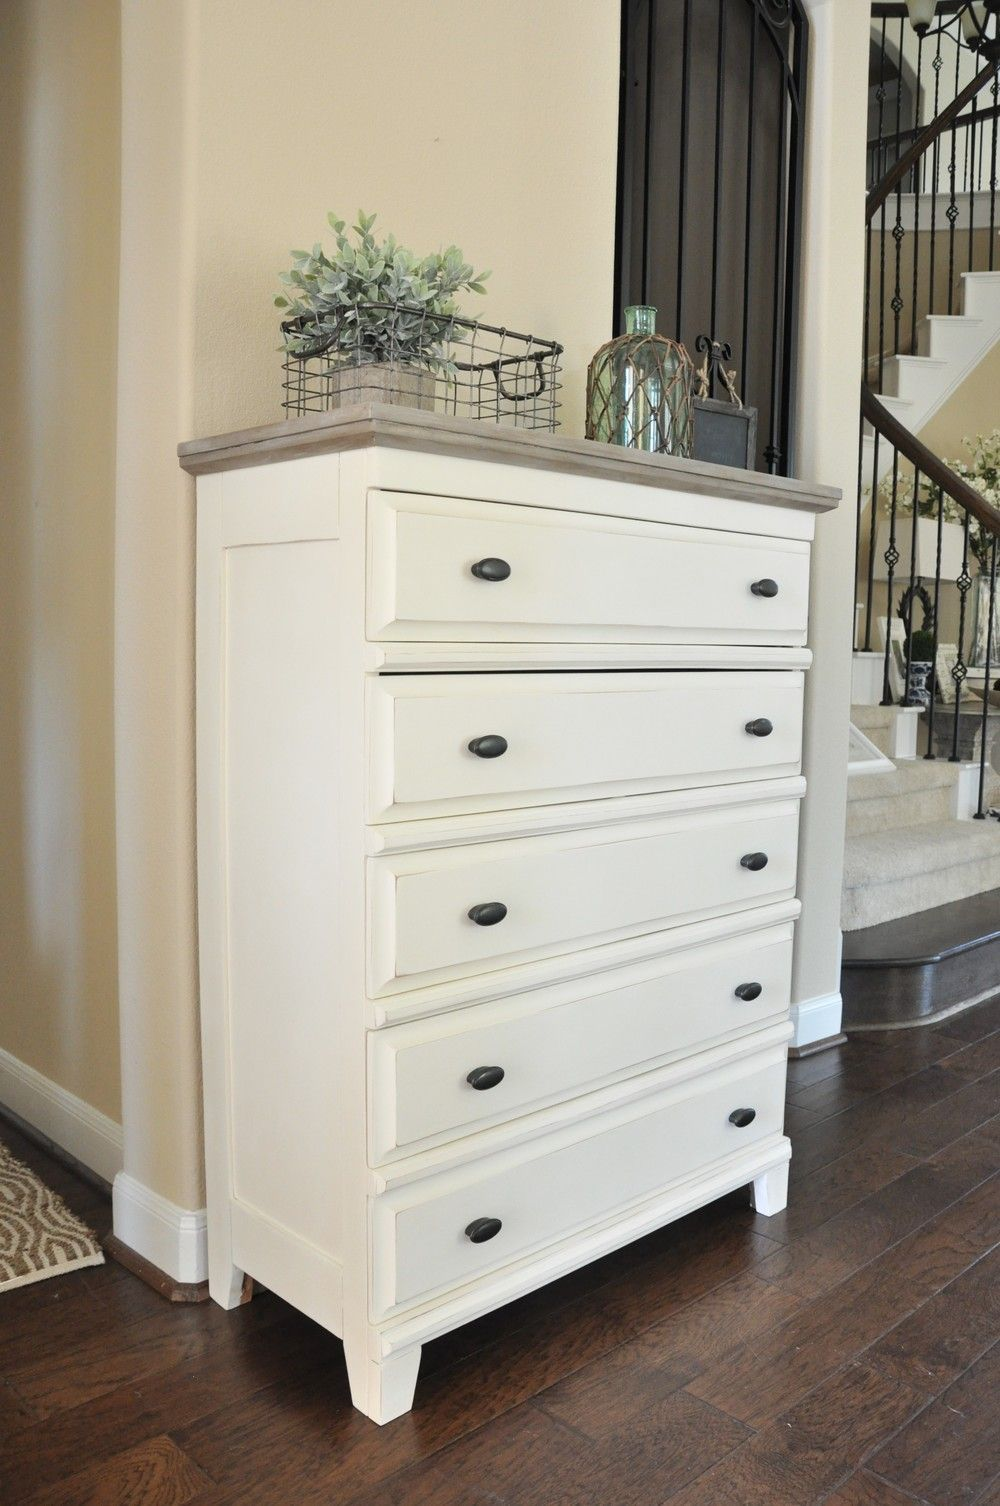 Painted bedroom furniture - From Transitional to Cottage ...